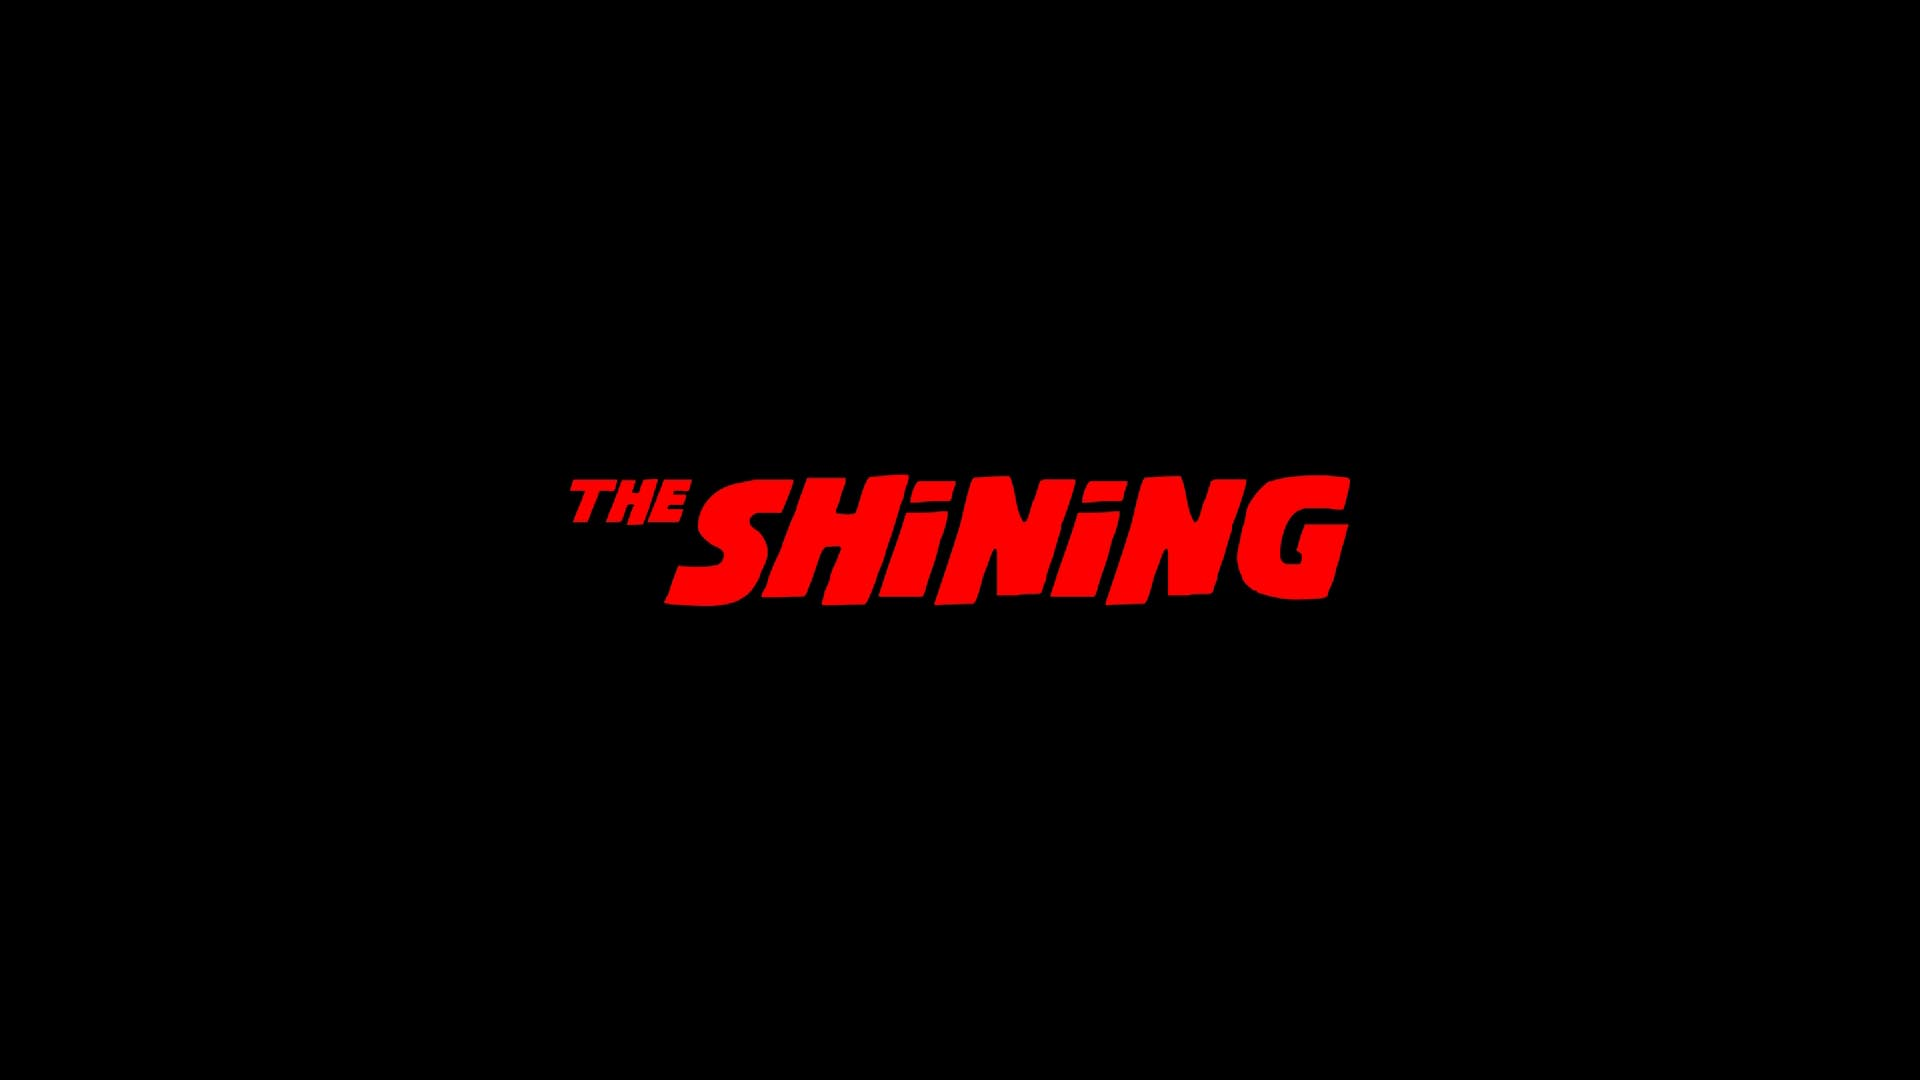 The Shining Computer Wallpapers, Desktop Backgrounds ...